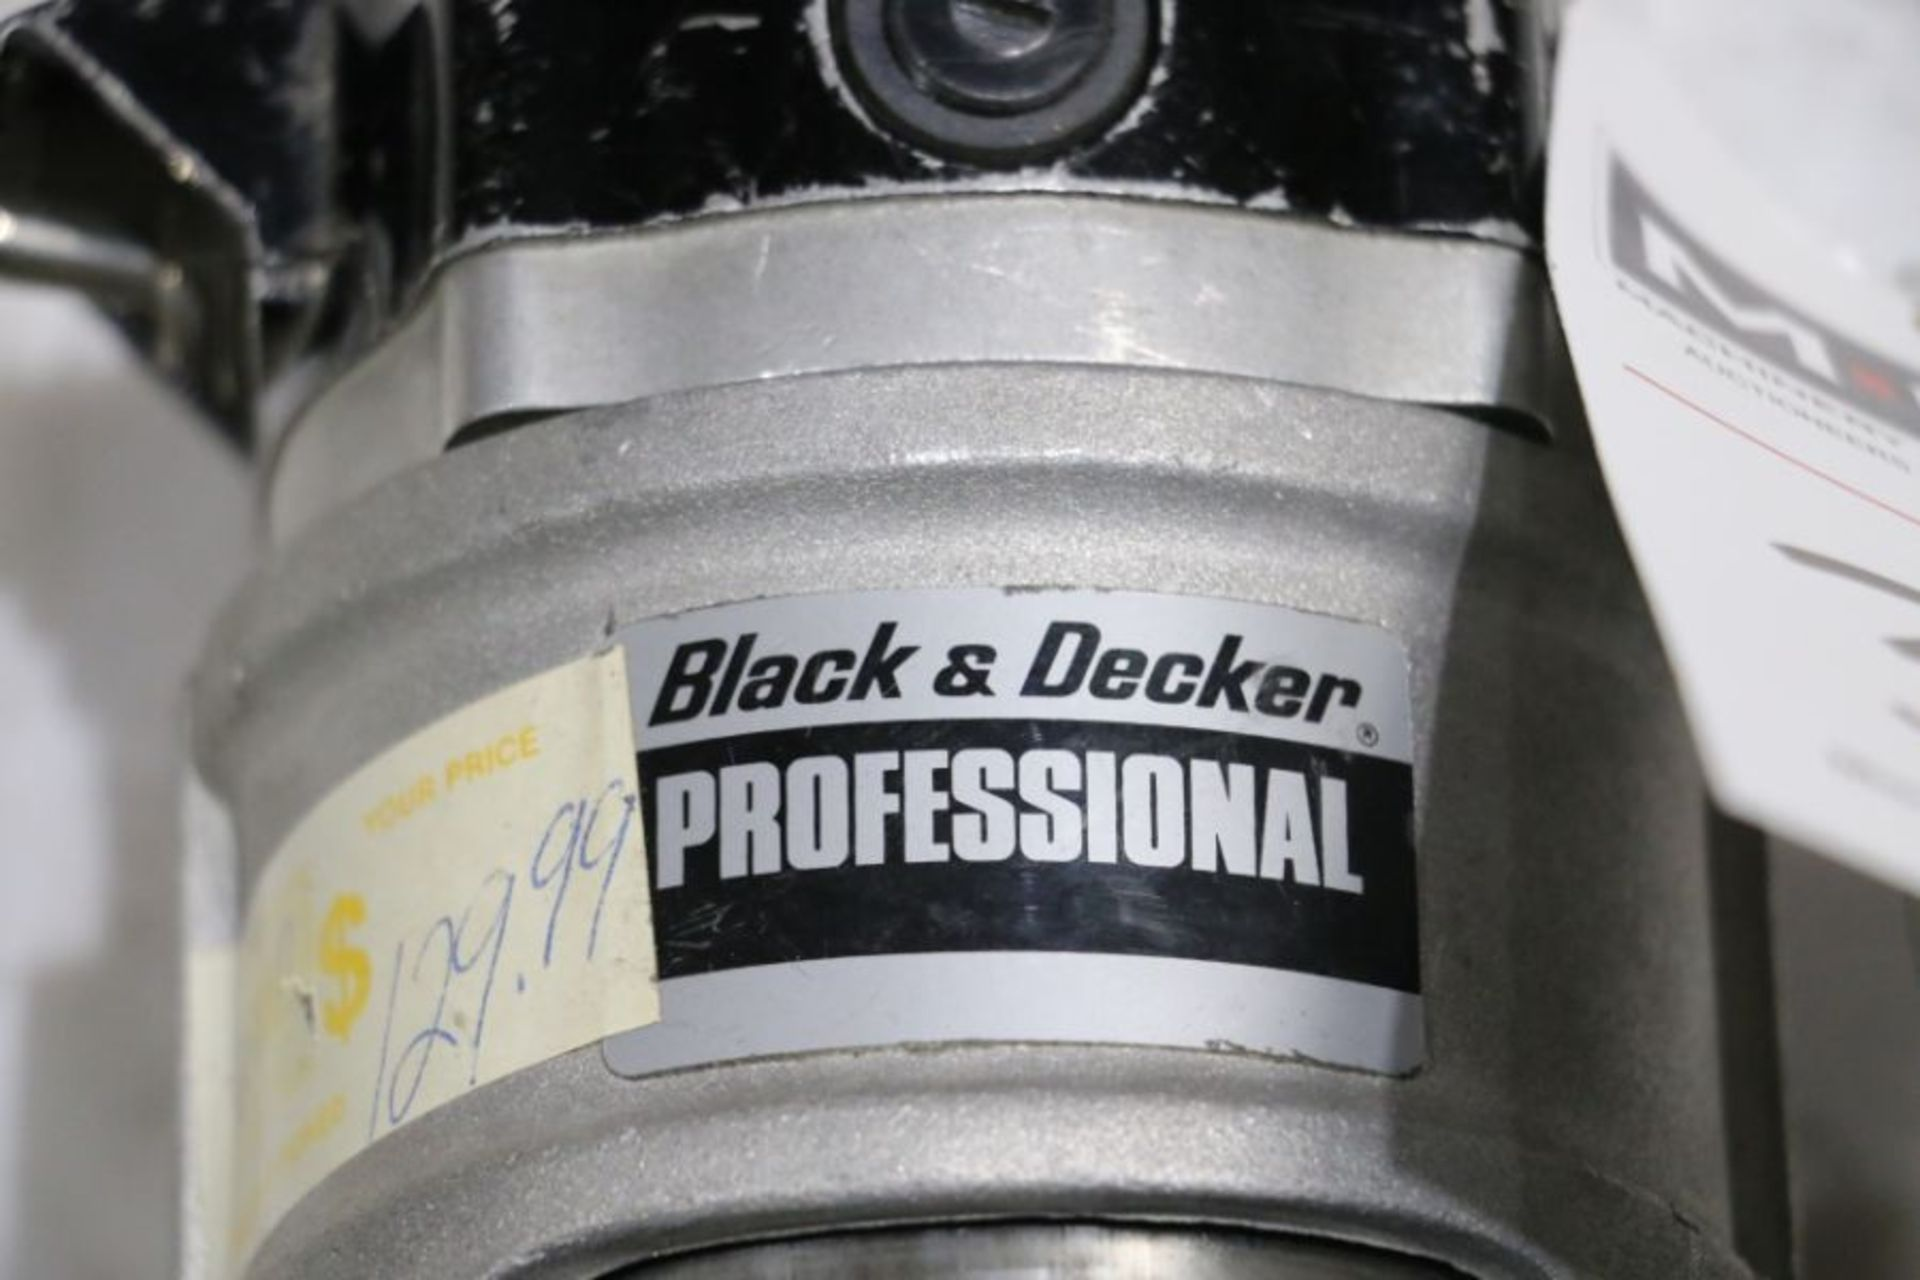 Black & Decker Router - Image 3 of 3